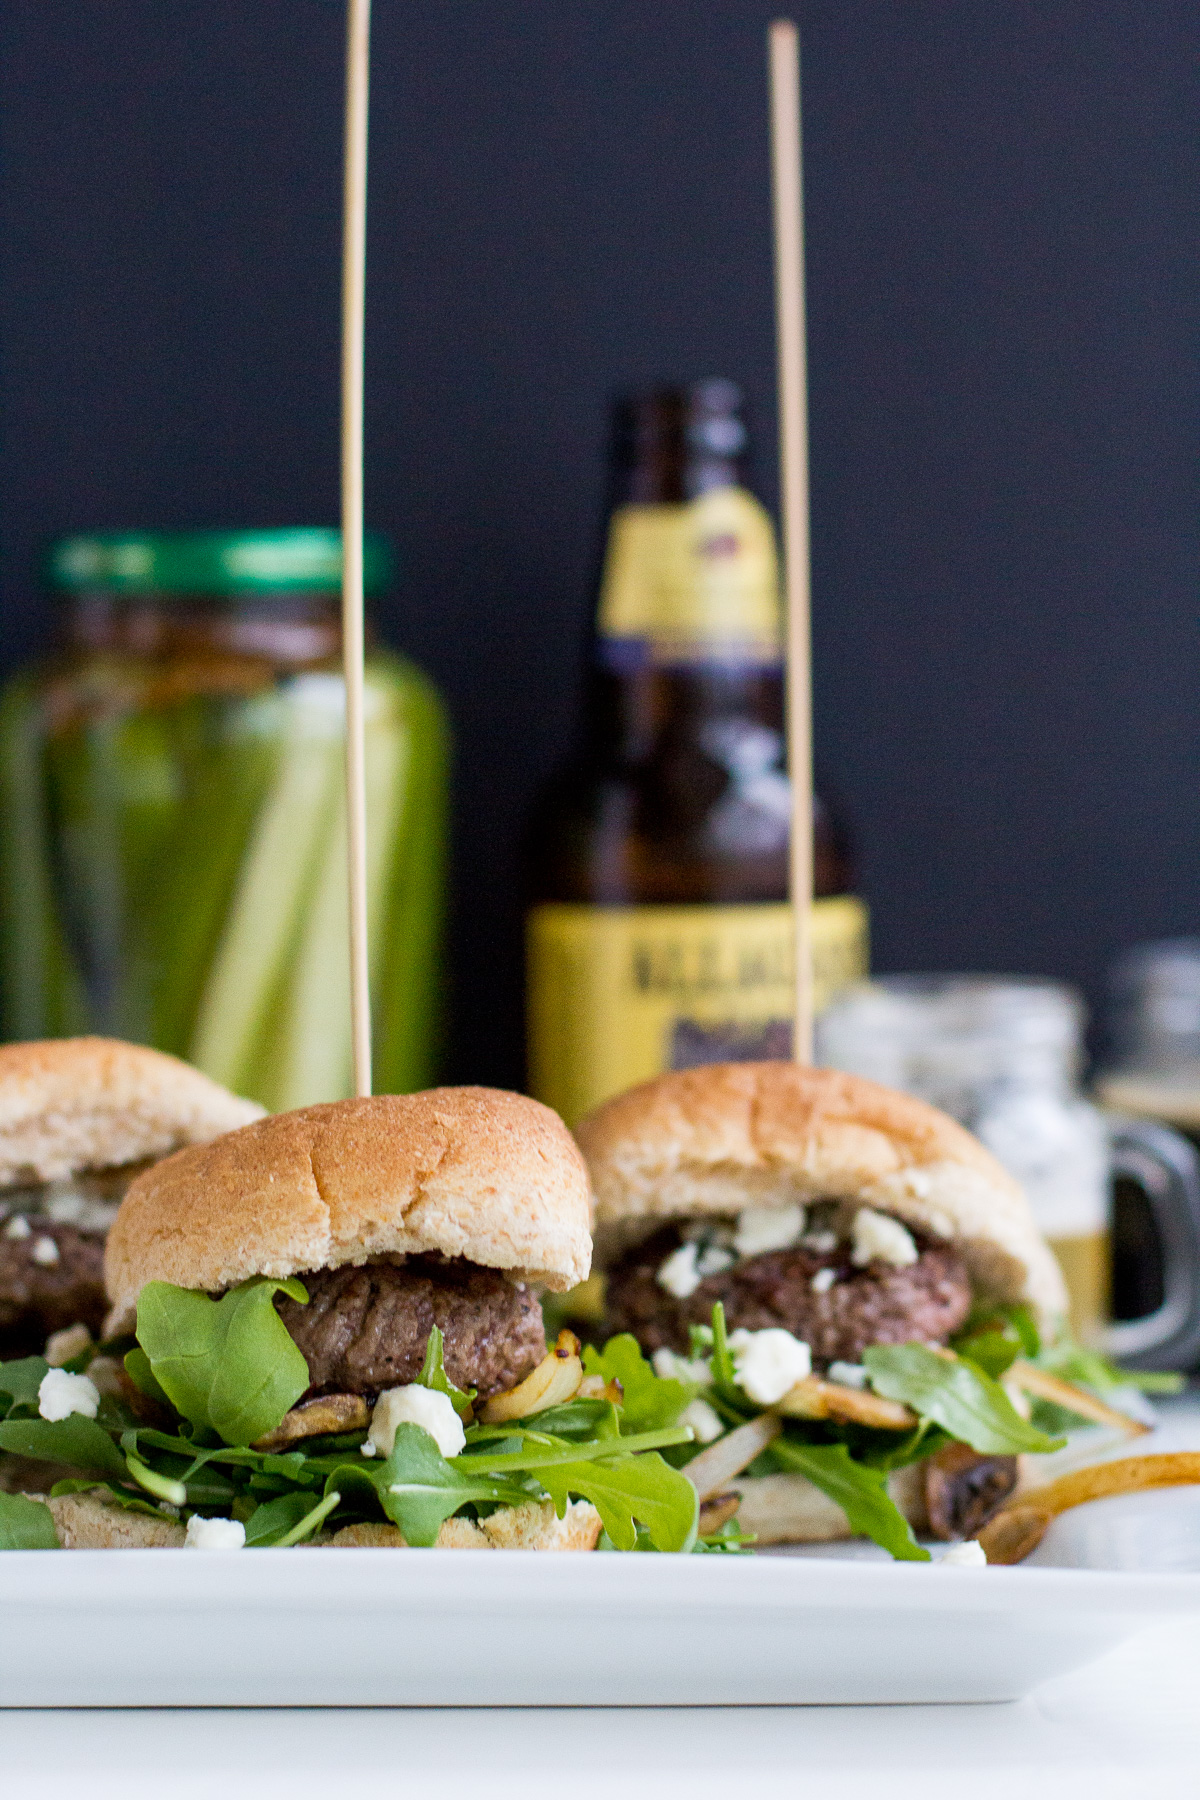 beer tasting party, slider recipe, homemade dill pickles, steak fries, cooking, food and drink, wandeleur